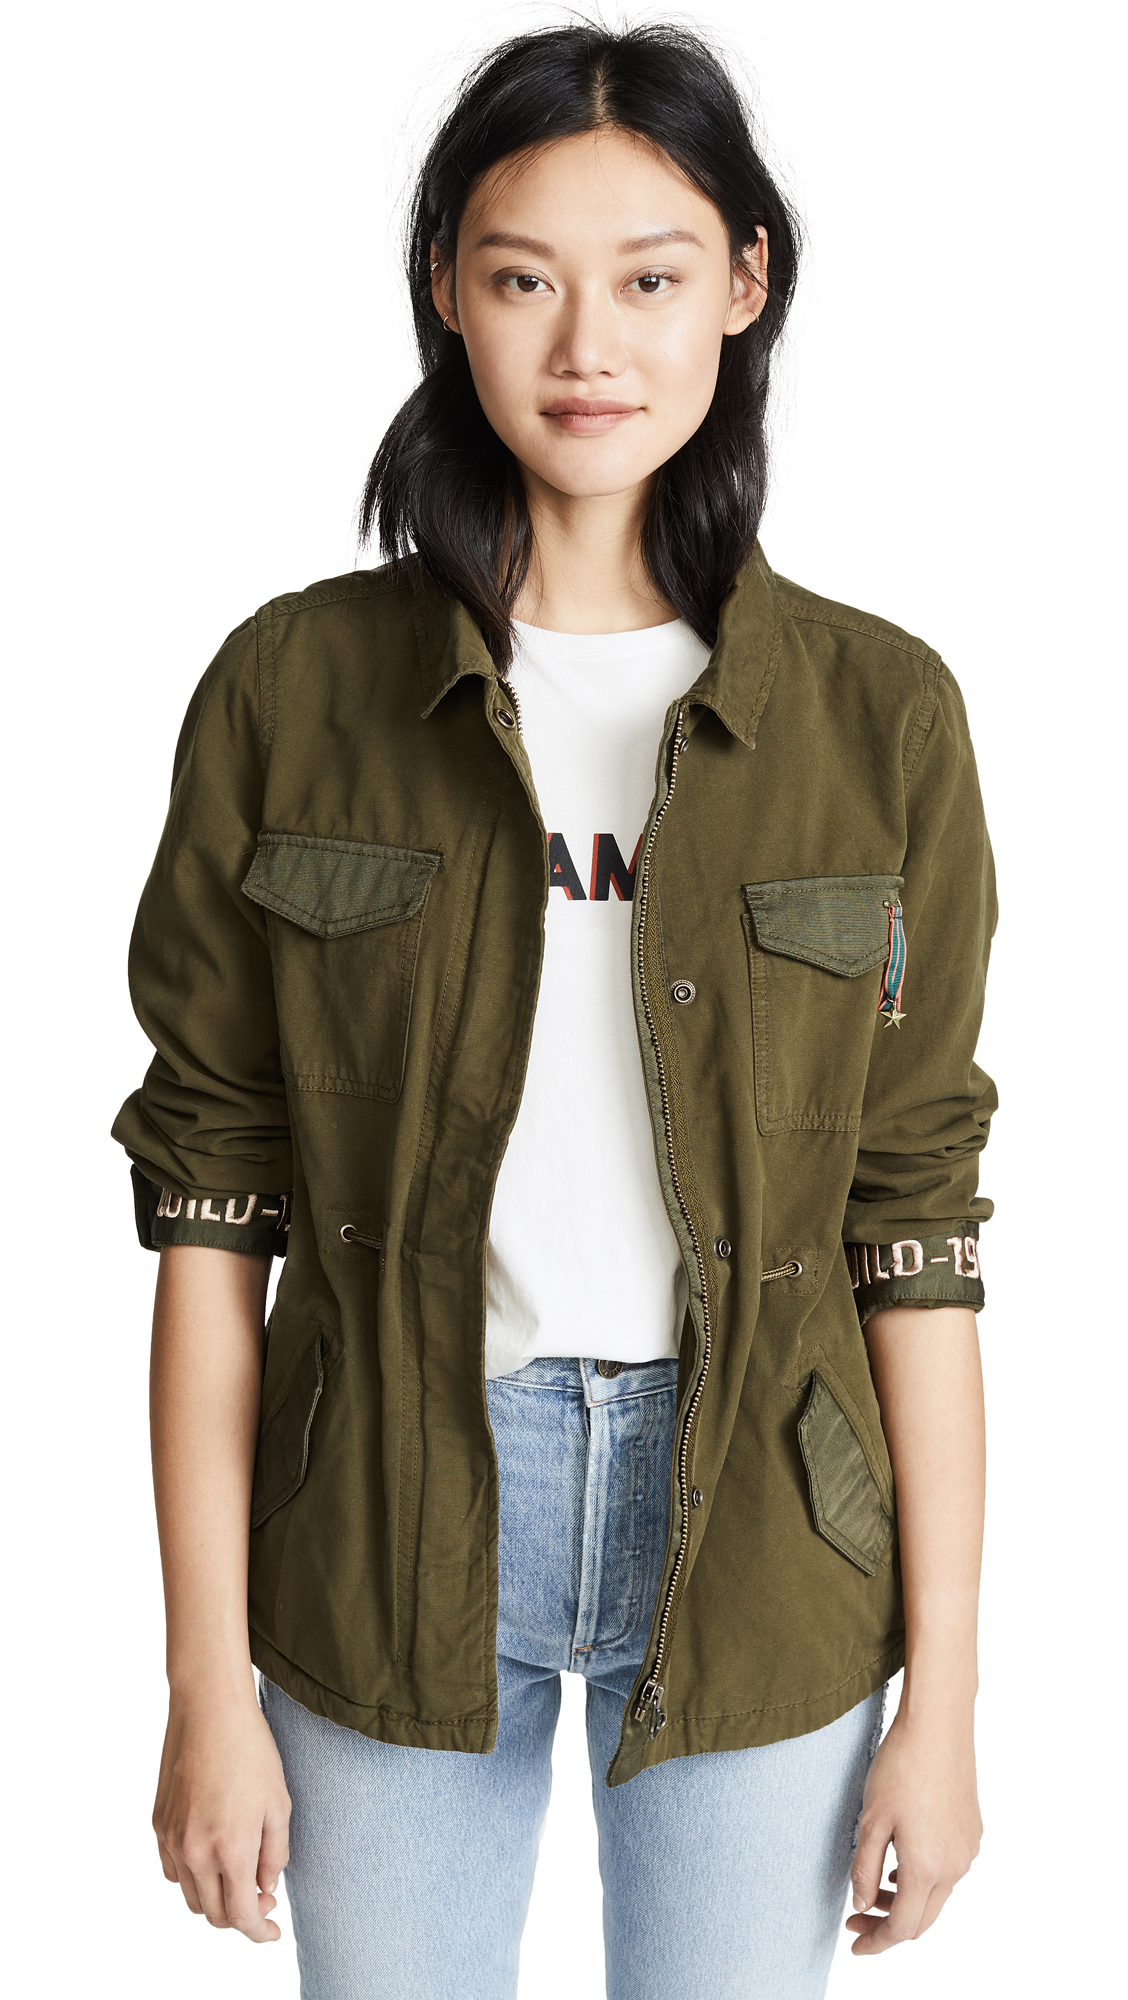 Scotch & Soda/Maison Scotch Festival Army Jacket